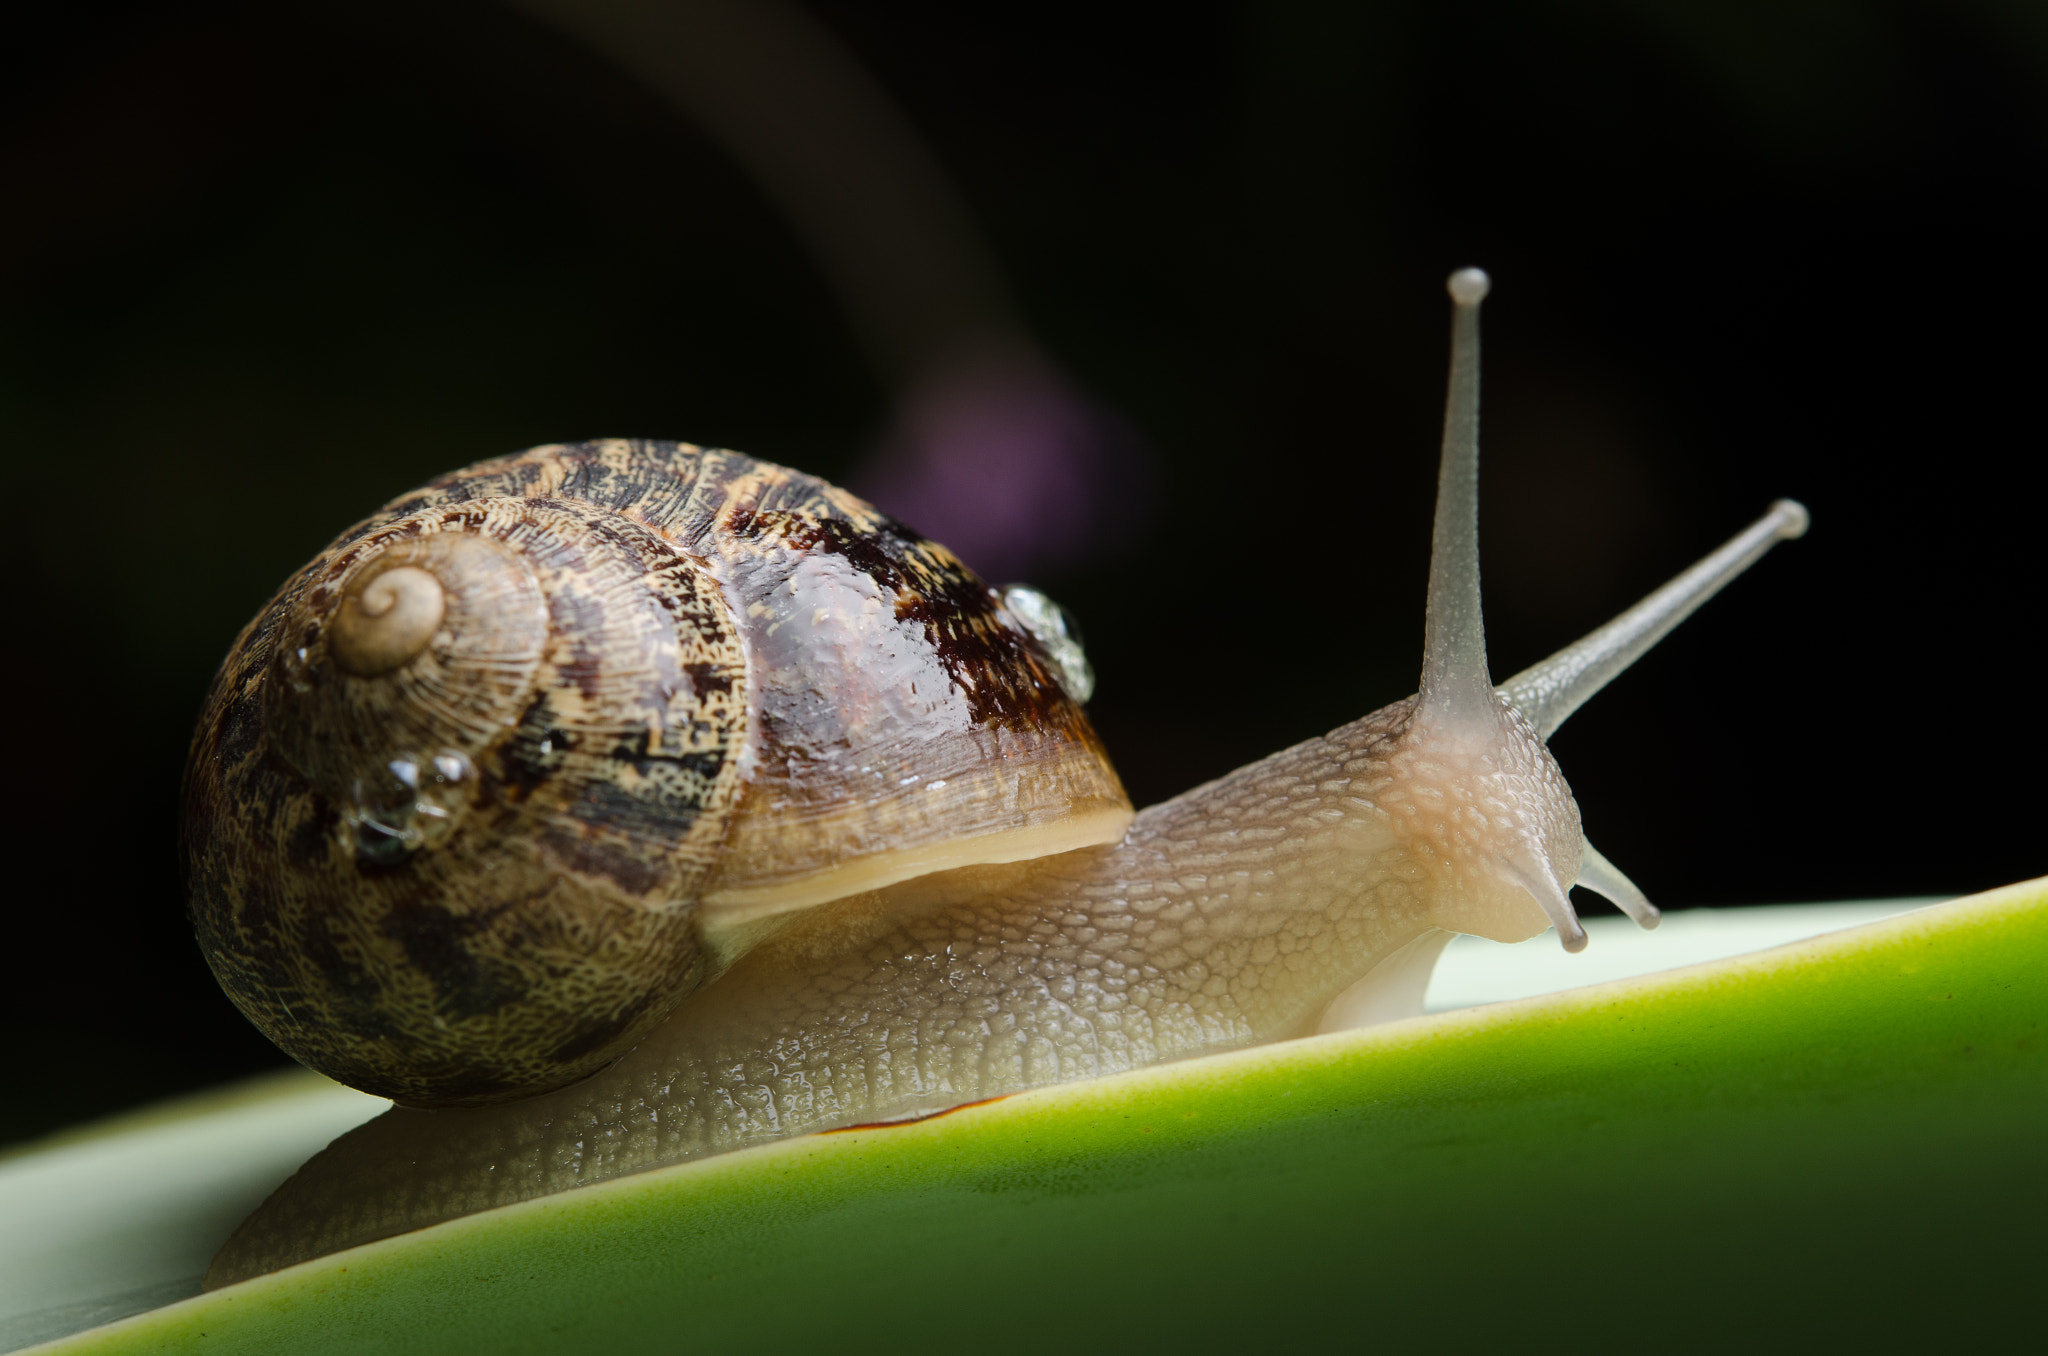 Photograph Snail by greg dusud on 500px